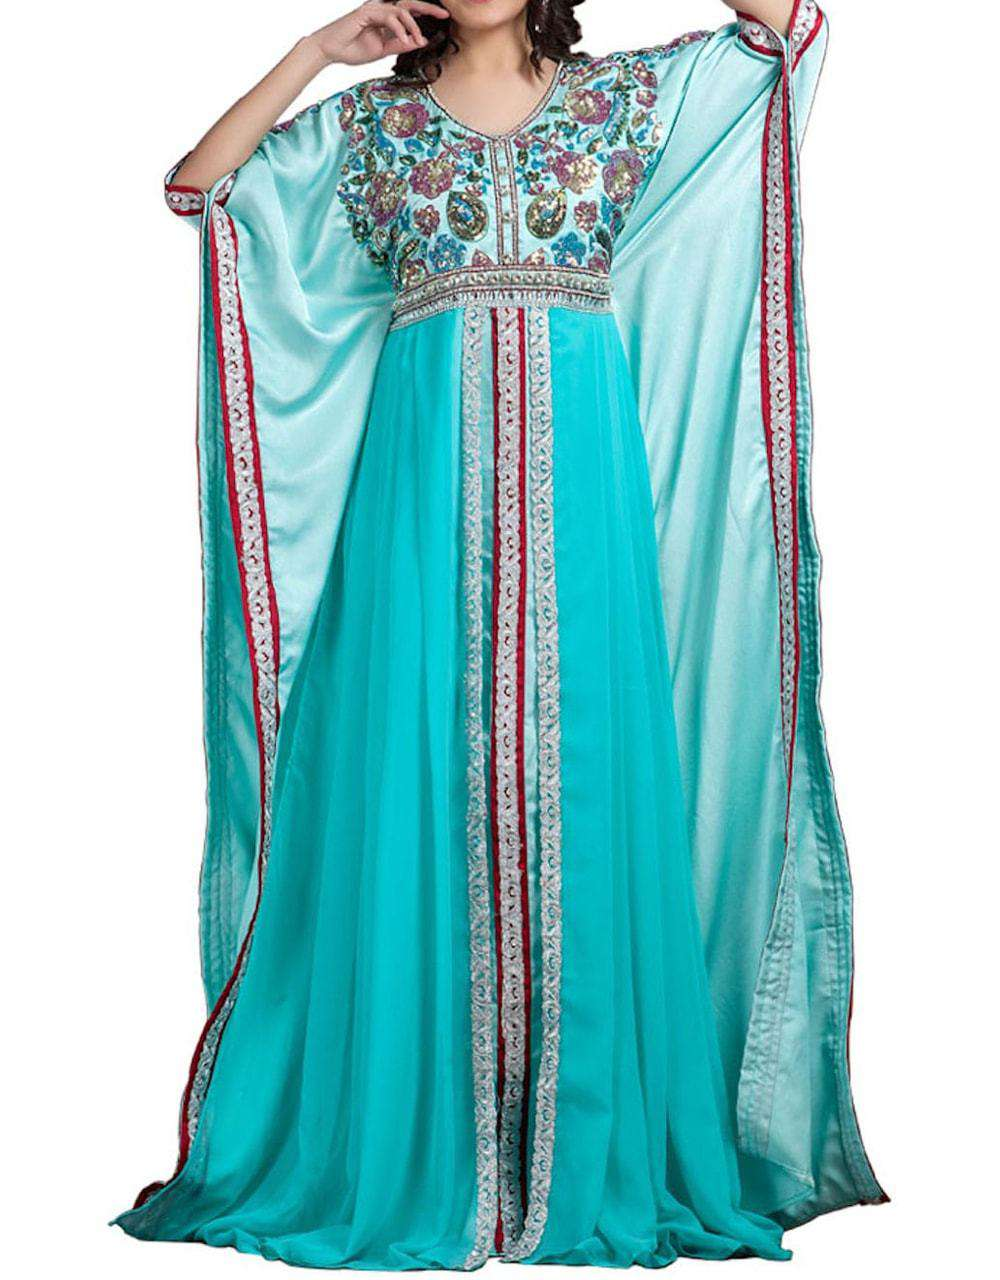 Aqua Blue color partywear Georgette Islamic Dress